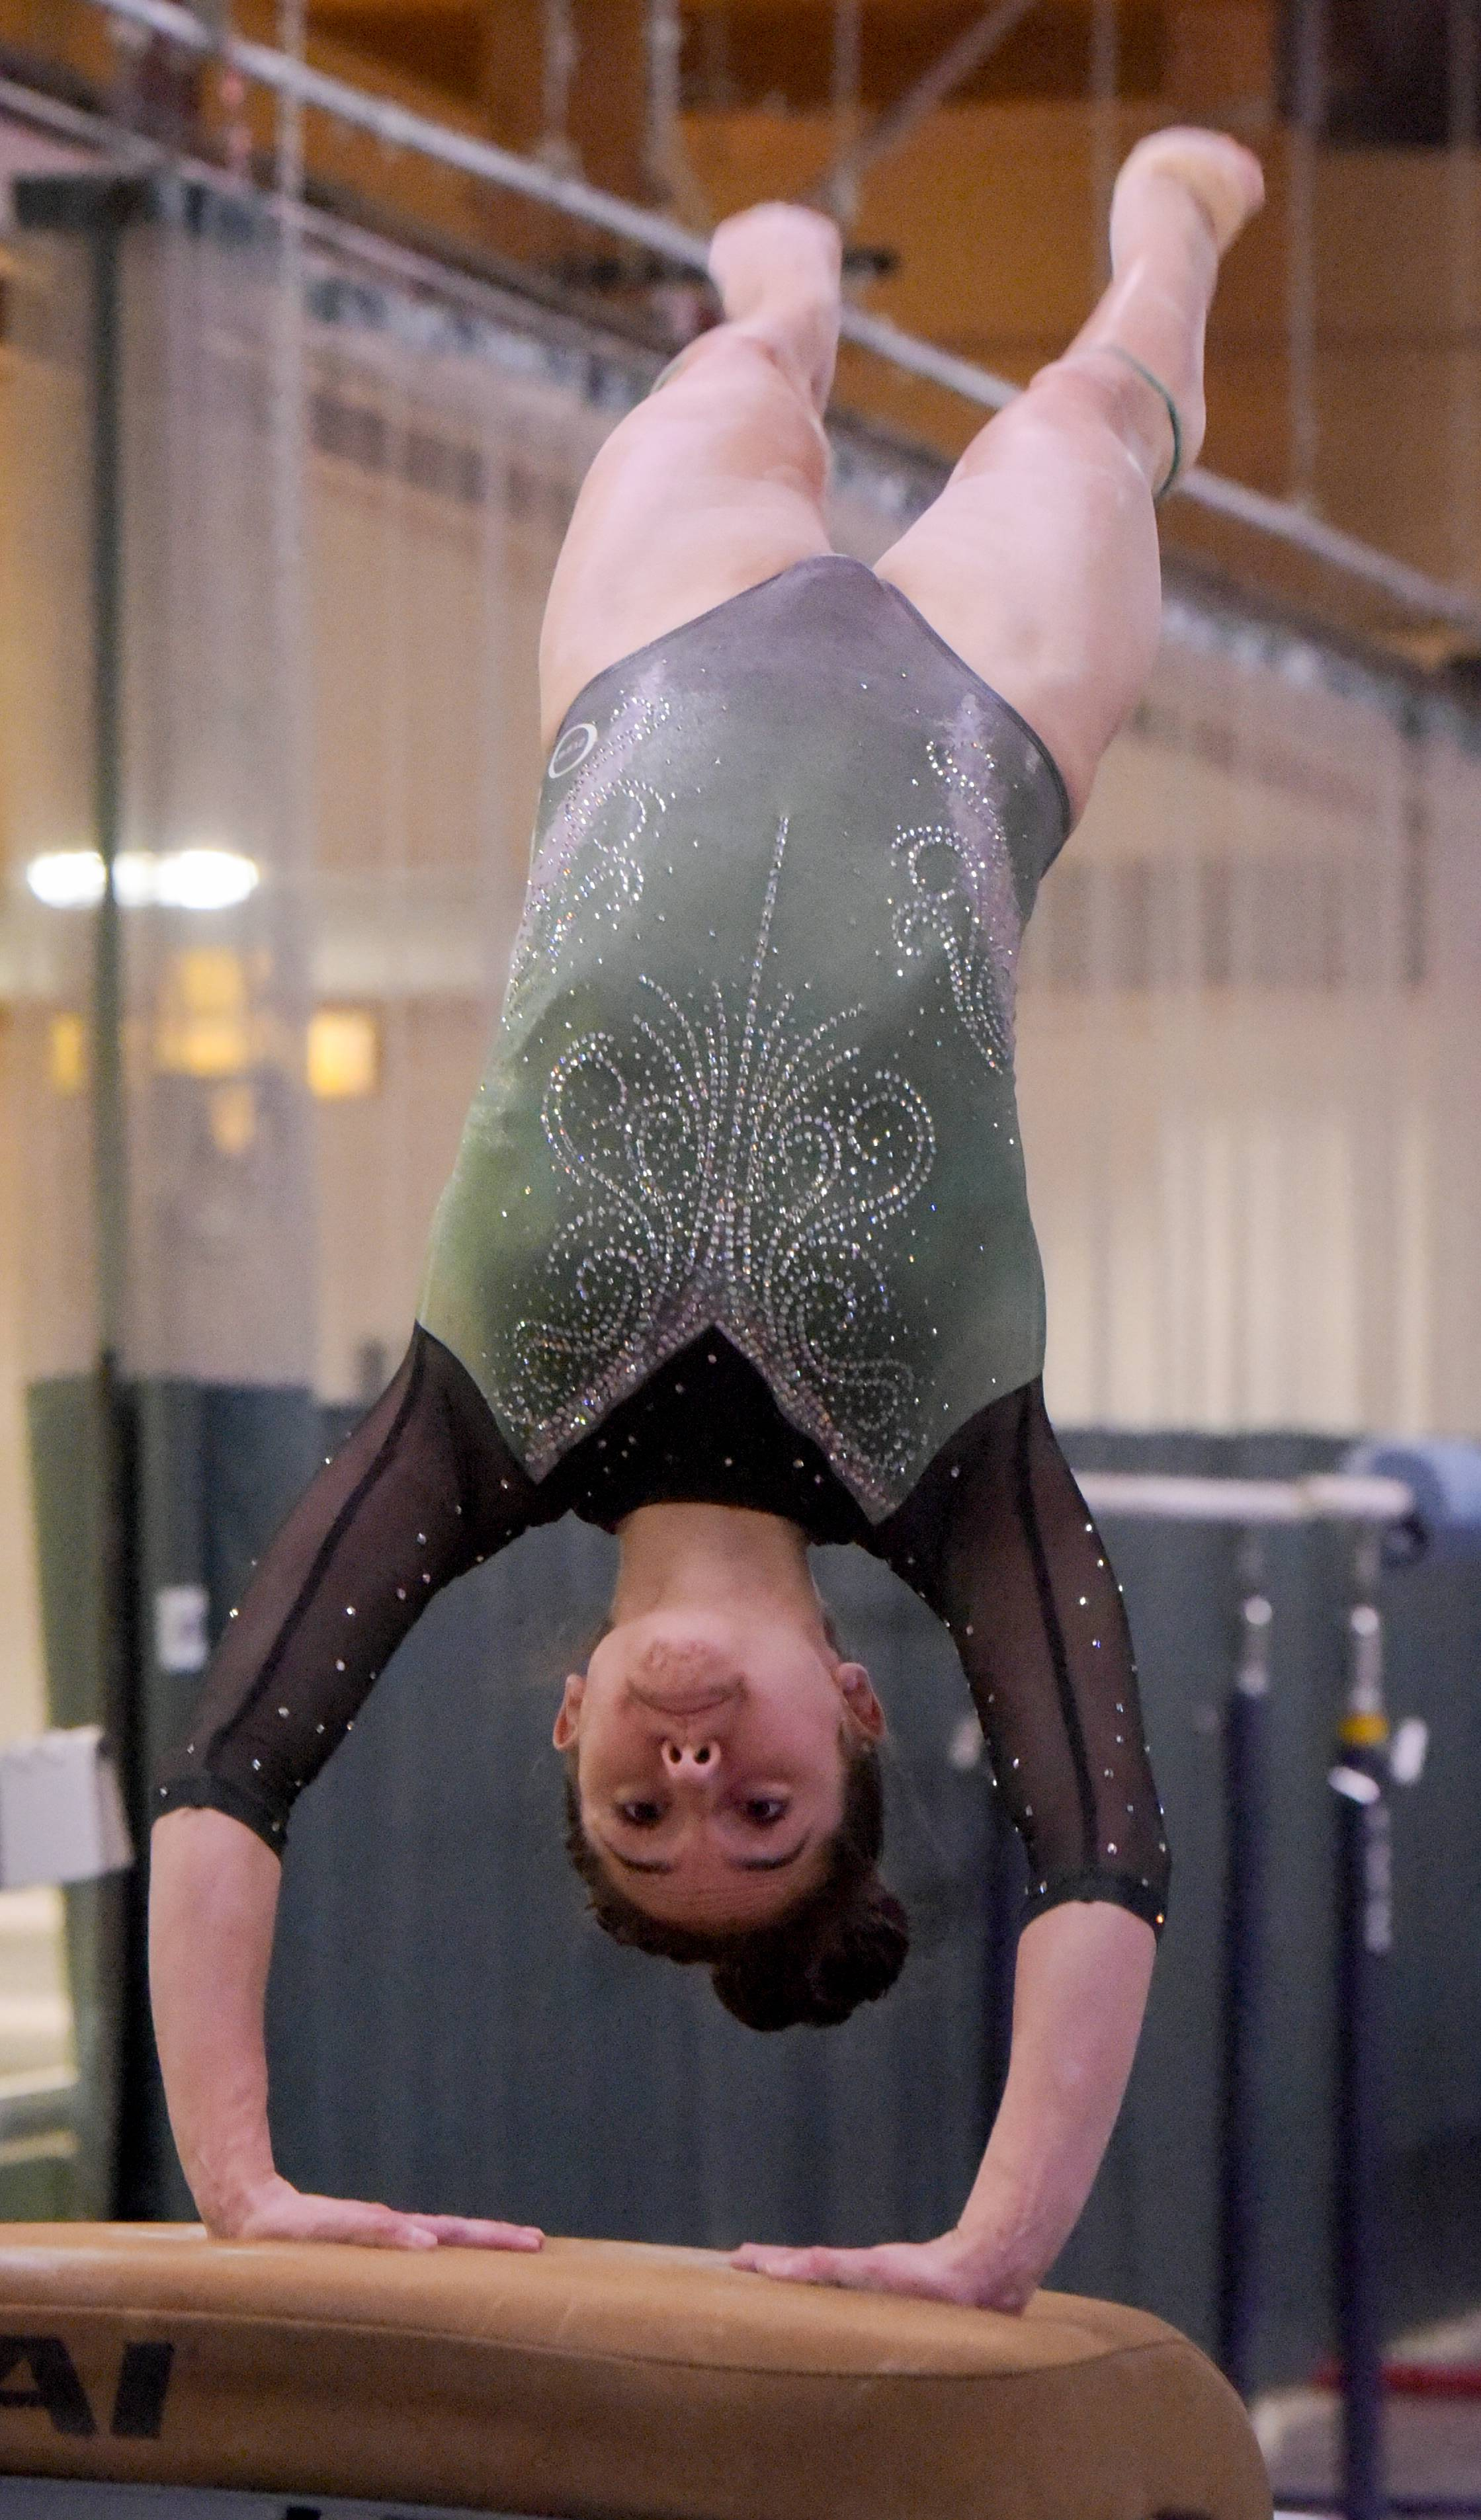 Glenbard West's Taylor Ramirez competes on the vault during the Glenbard West regional gymnastics meet on Wednesday, Jan. 31, 2018.